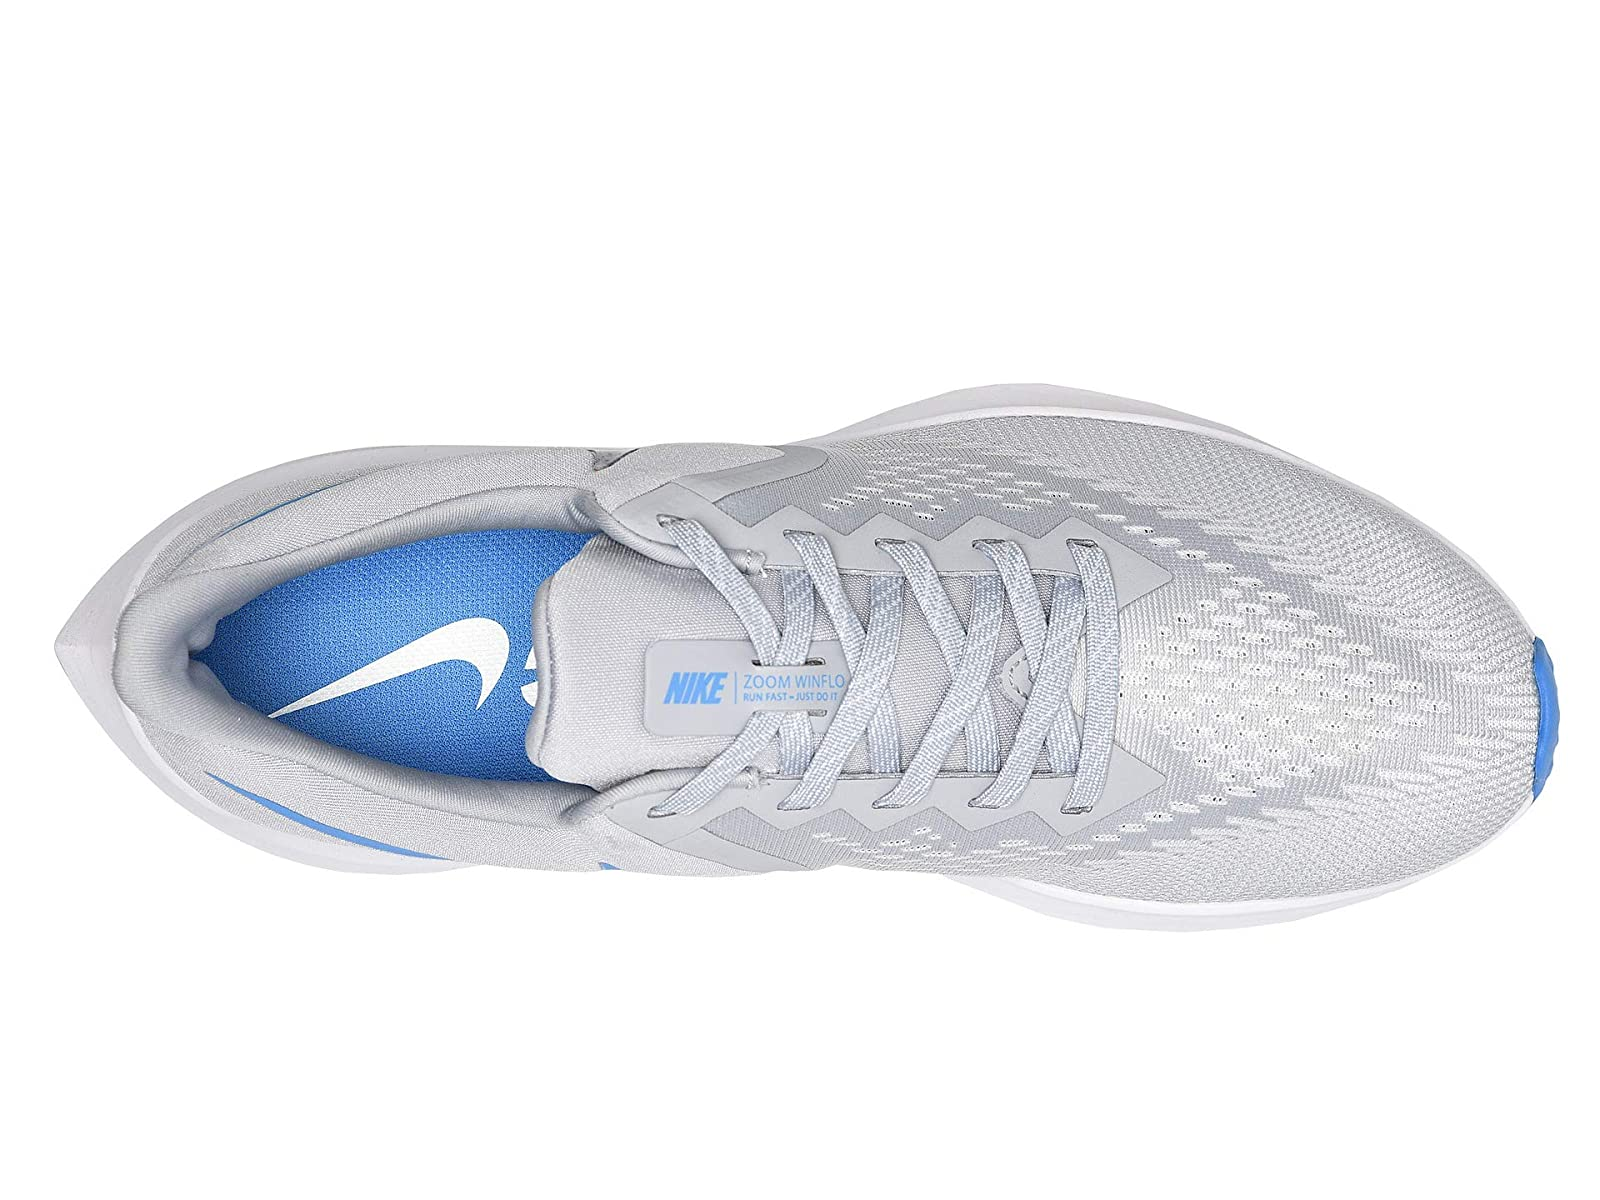 Man-039-s-Sneakers-amp-Athletic-Shoes-Nike-Air-Zoom-Winflo-6 thumbnail 24